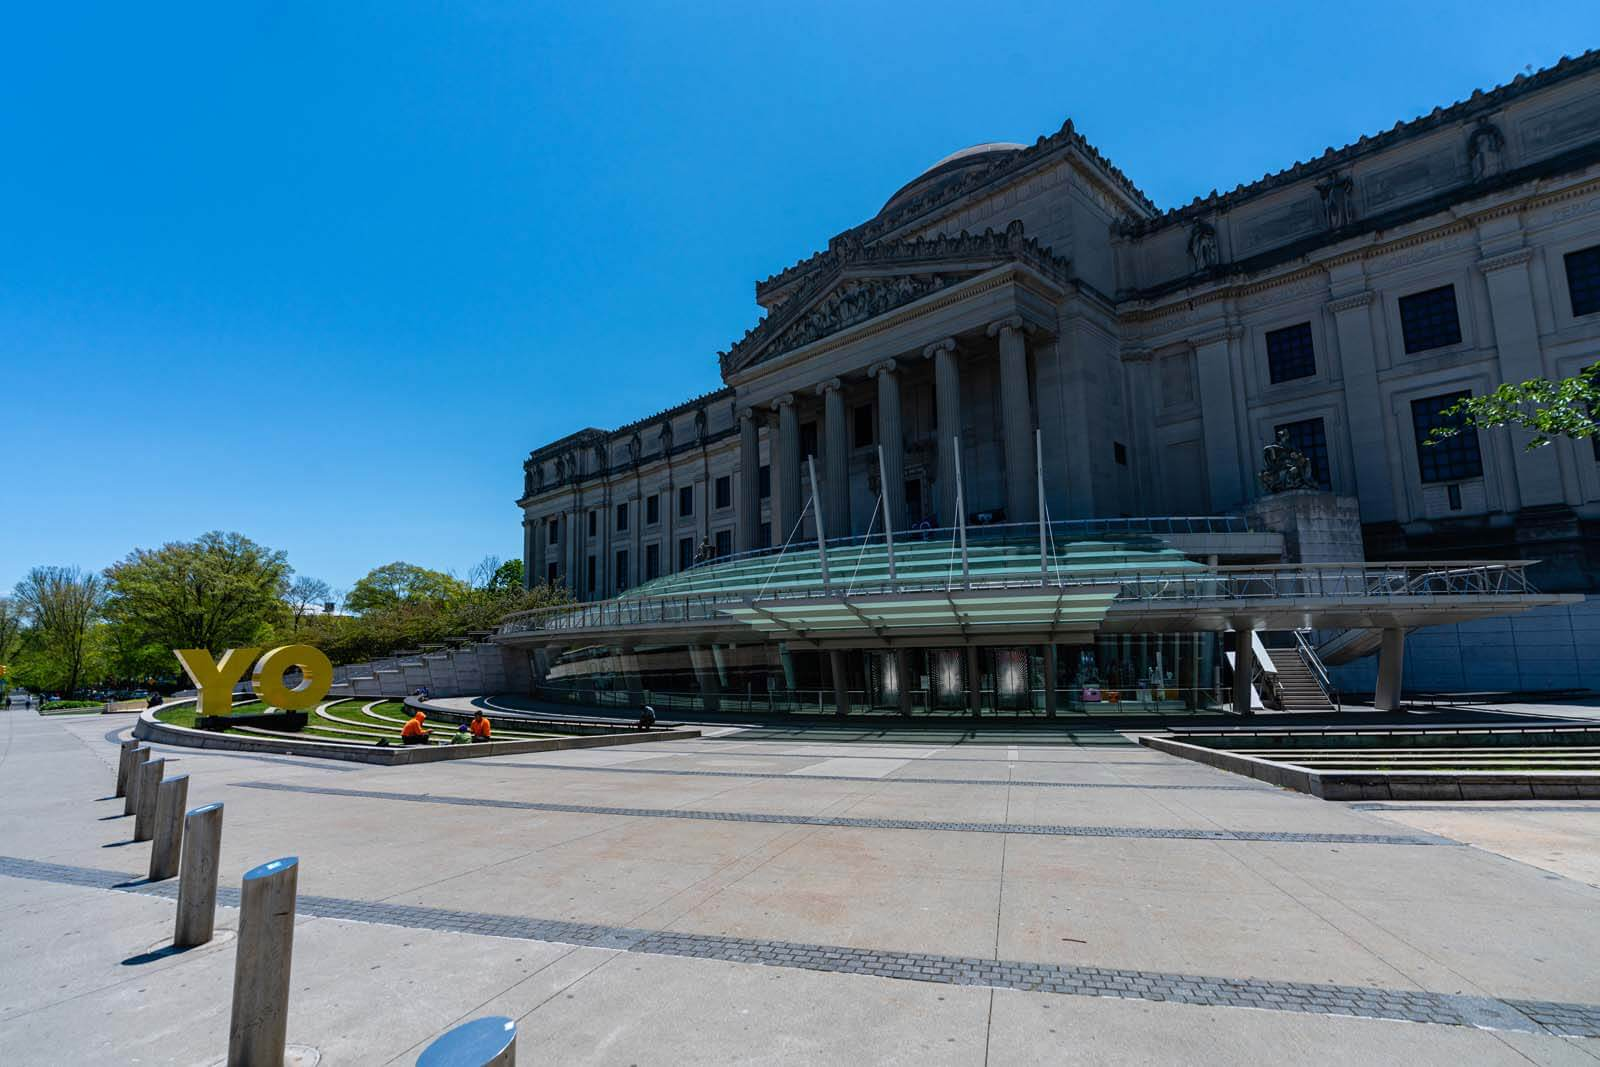 outside the Brooklyn Museum